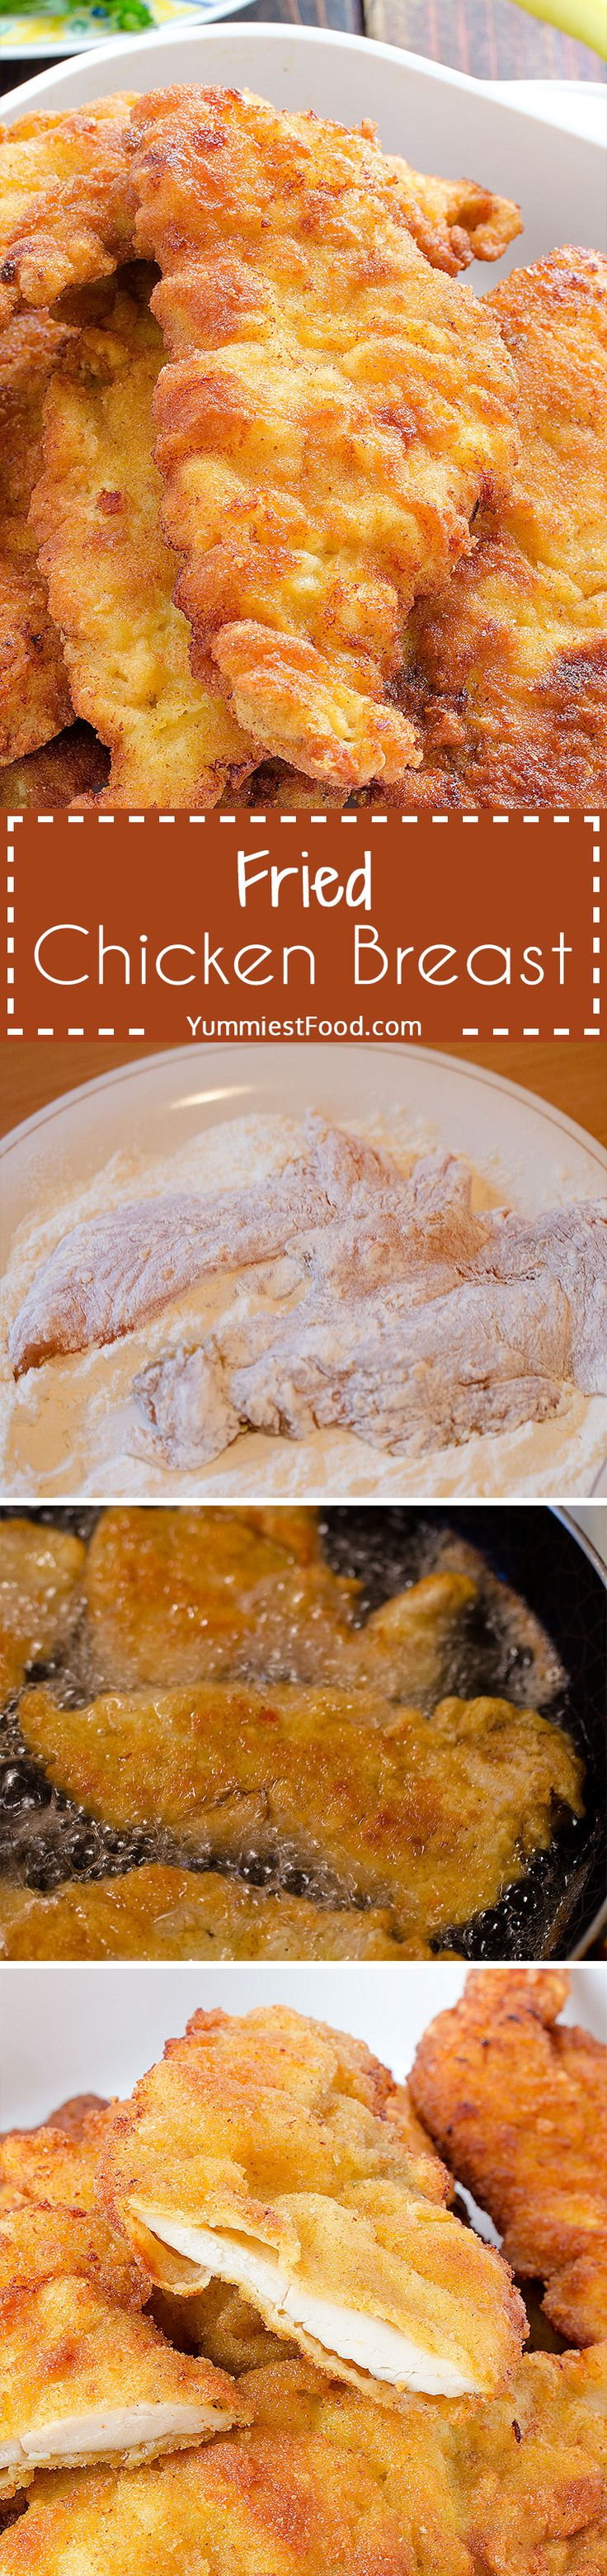 Fried Chicken Breast - Very interesting and easy way of preparing chicken breast, and very soft and delicious